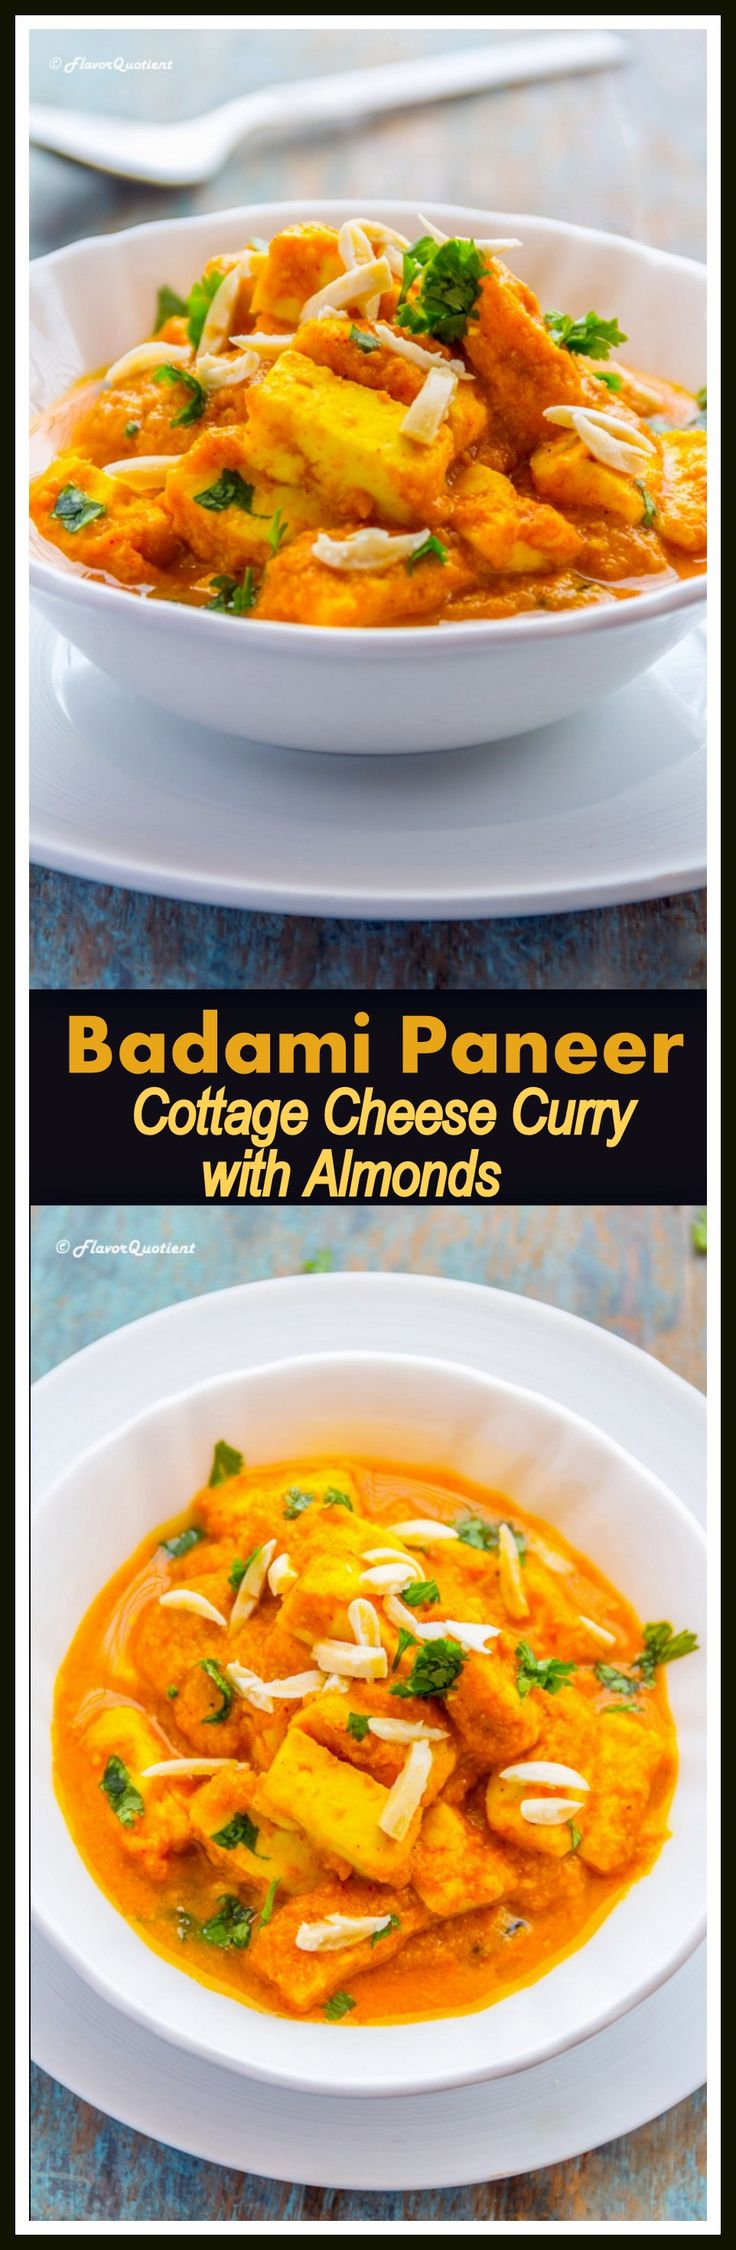 Buttery smooth and silky rich Indian paneer curry is the ideal treat for creating memory on special occasions; it is simply magical! #BadamiPaneer #Paneer #Curry #Cottagecheese #FlavorQuotient